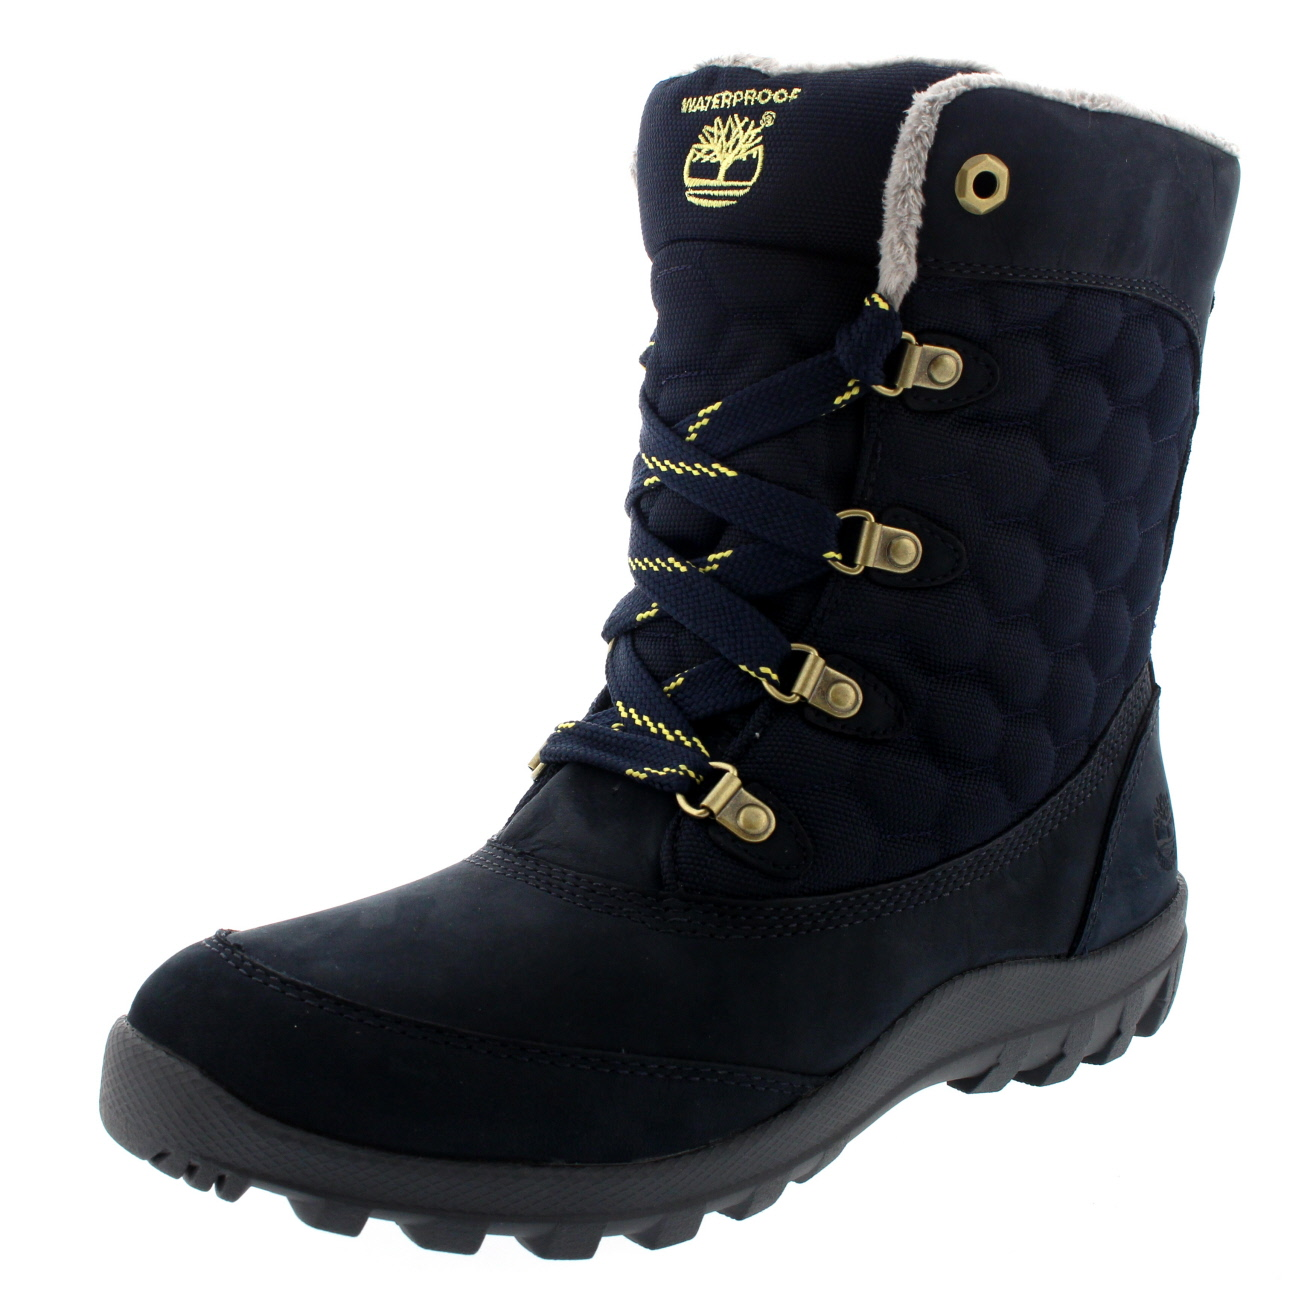 Shop women's snow boots with a variety of functionalities, like advanced waterproofing and insulation, from The North Face winter boot collection.